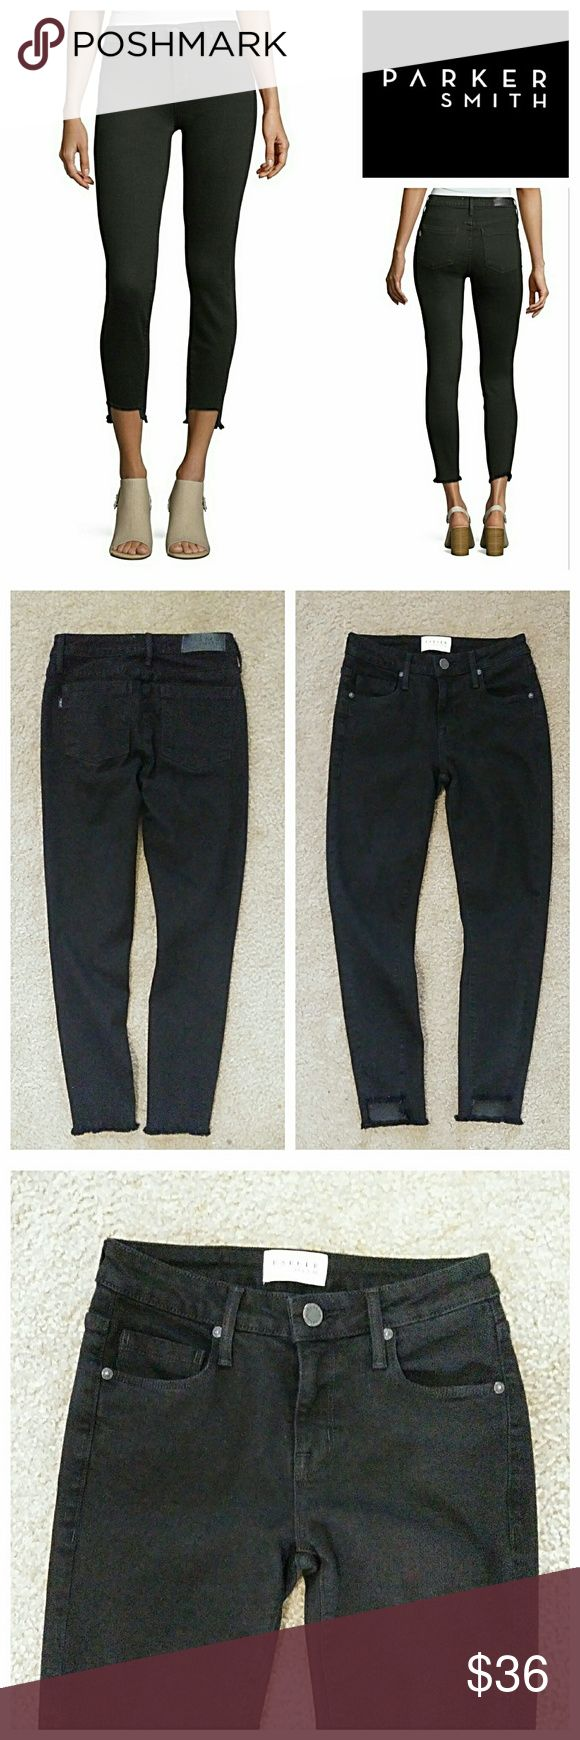 """Parker Smith Twisted Seam Skinny Jeans Figure flattering and comfy jeans with a little edge. These are in excellent co and come from a smoke-free, pet-free clean home. Waist Laid Flat - 13"""" Hips Laid Flat - 17"""" Rise - 8.5"""" Inseam - 26"""" 💥 Reasonable Offers Accepted 💥 PARKER SMITH Jeans Skinny"""